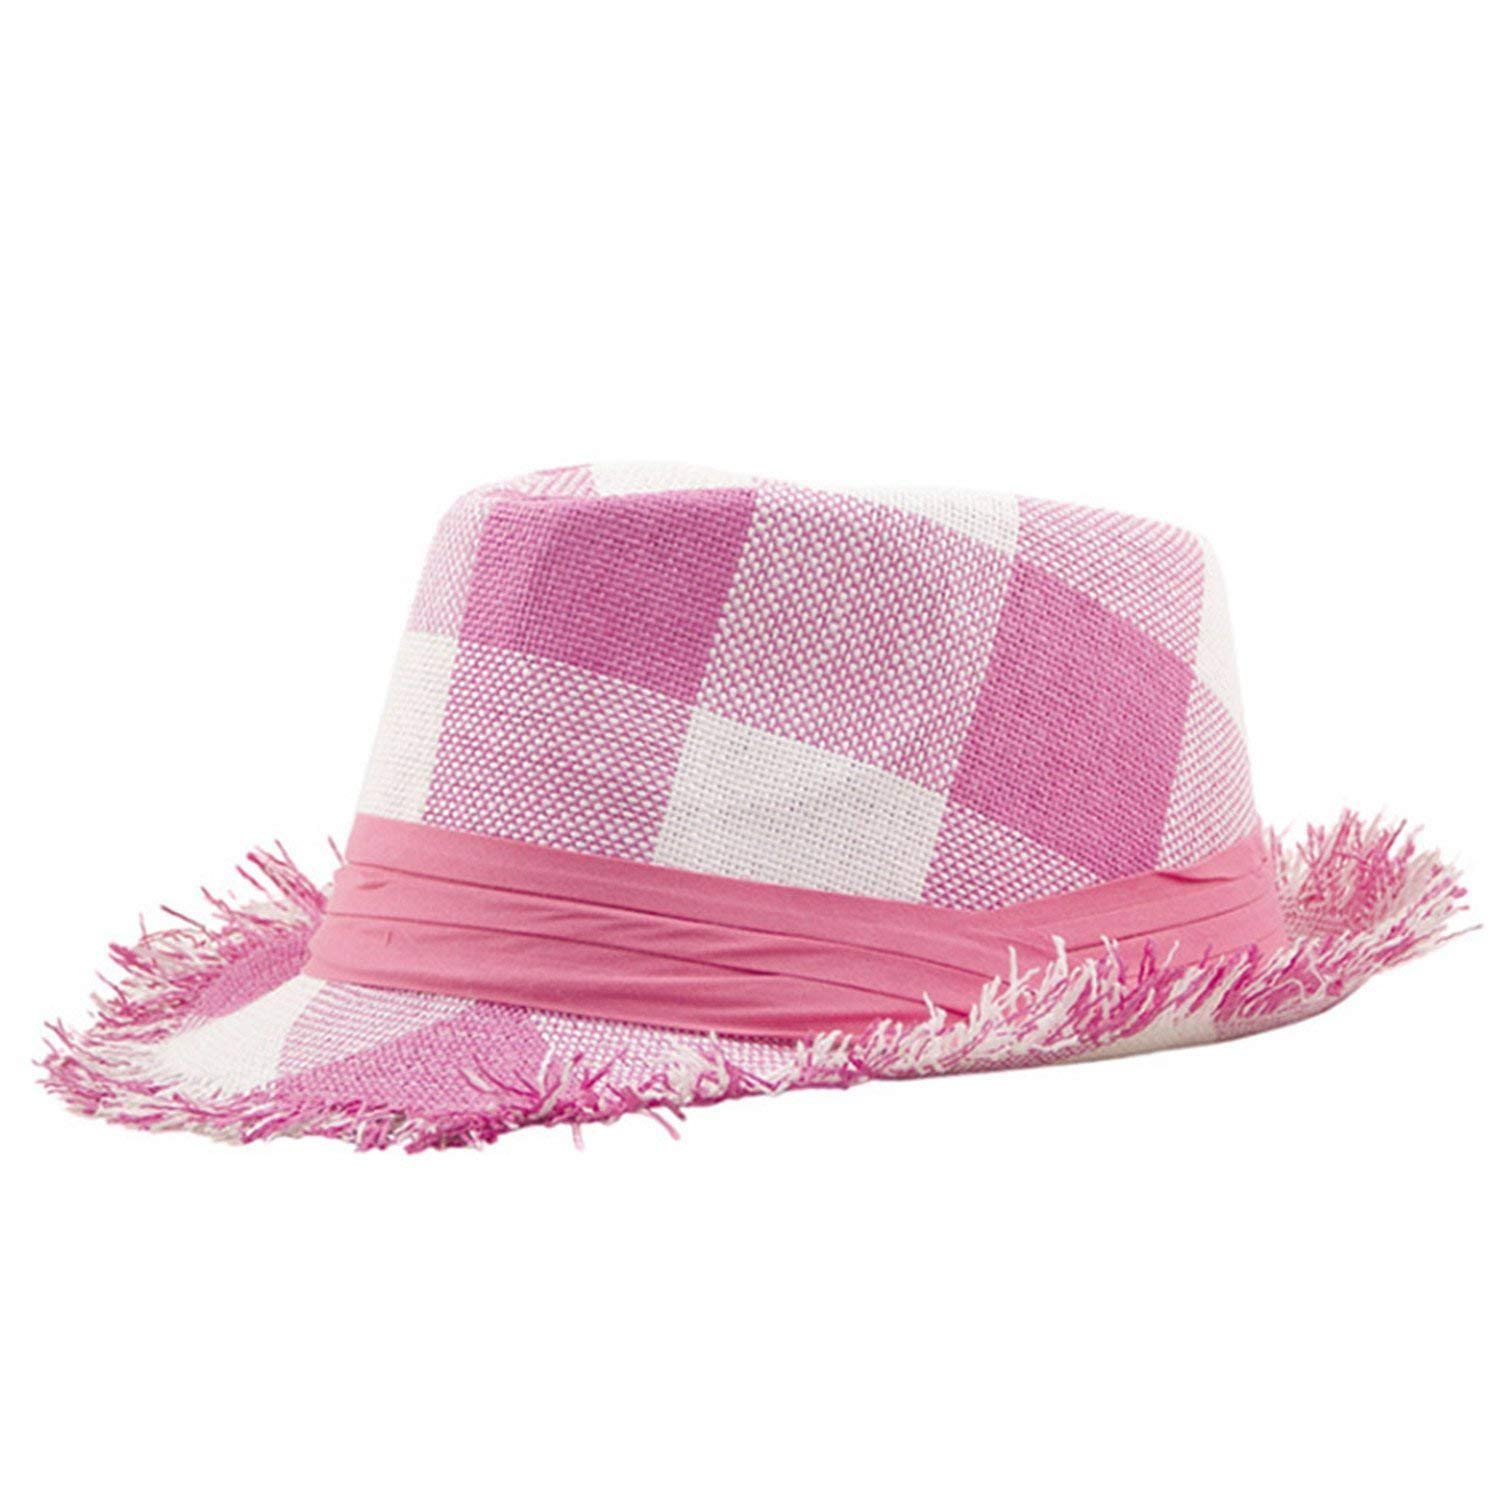 bc9c266d Get Quotations · Eric Hug hat Summer Beach Hats for Women Panama Hat Plaid  Straw Fedoras Lady Casual Jazz